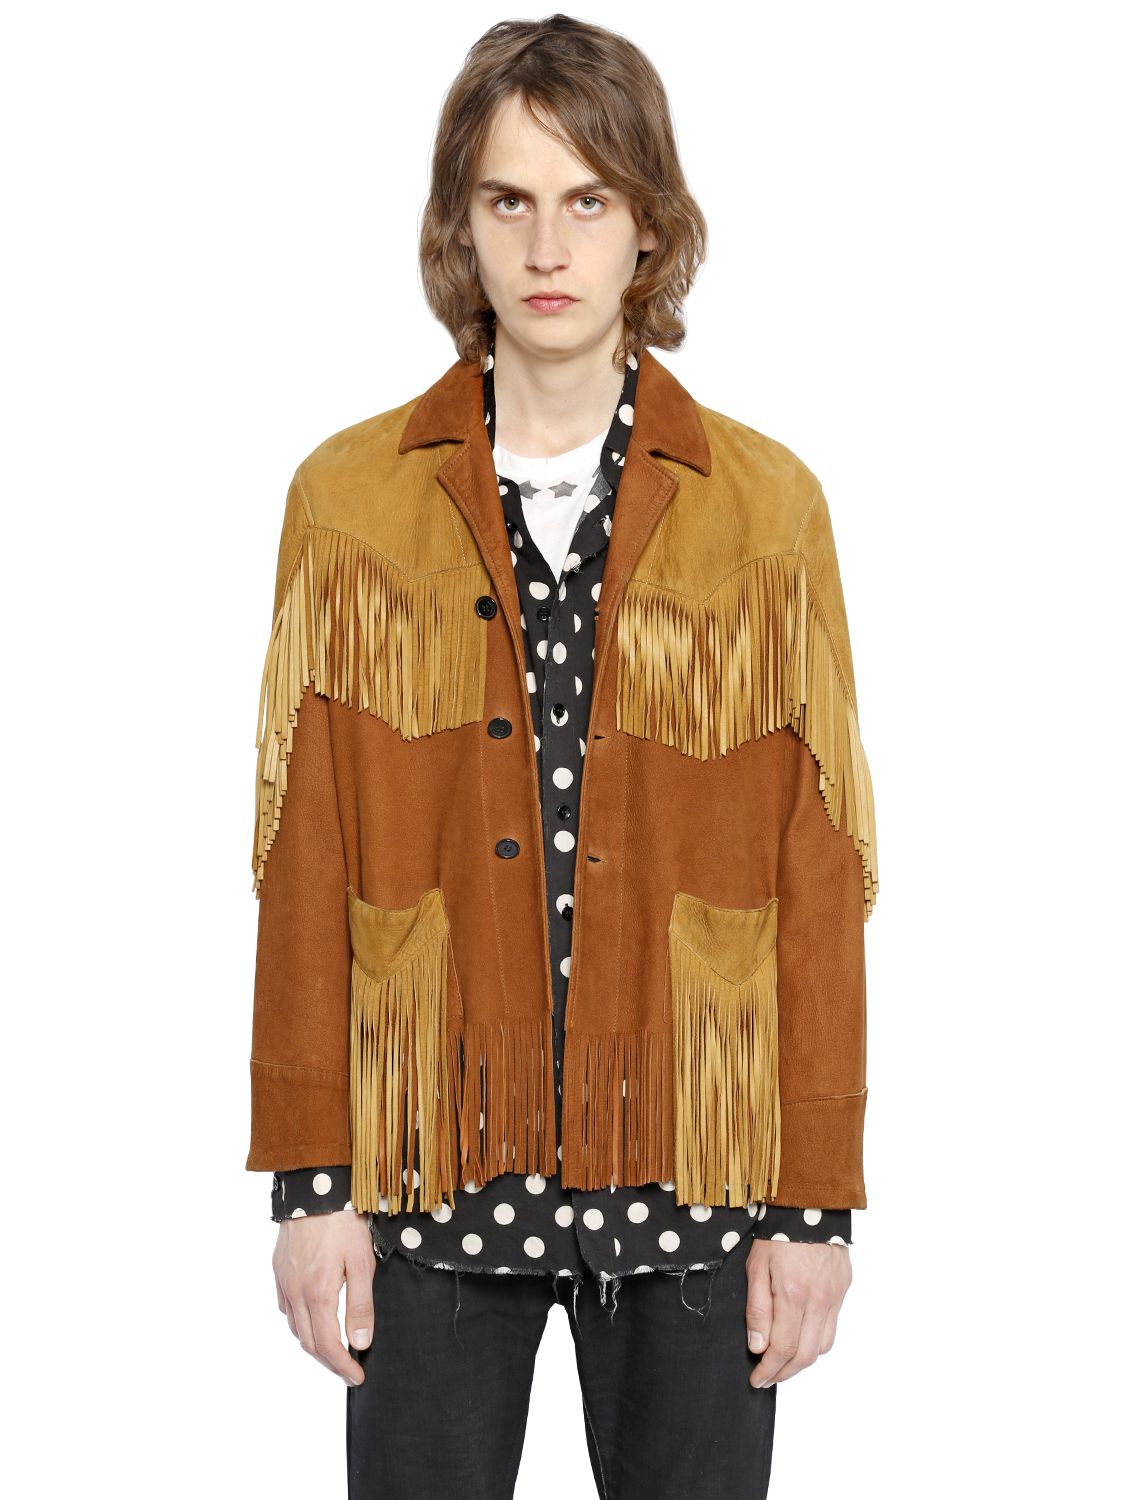 Suede Jacket Outfits For Men 20 Ways To Wear A Suede Jacket: Saint Laurent Vintage Fringed Suede Jacket In Brown